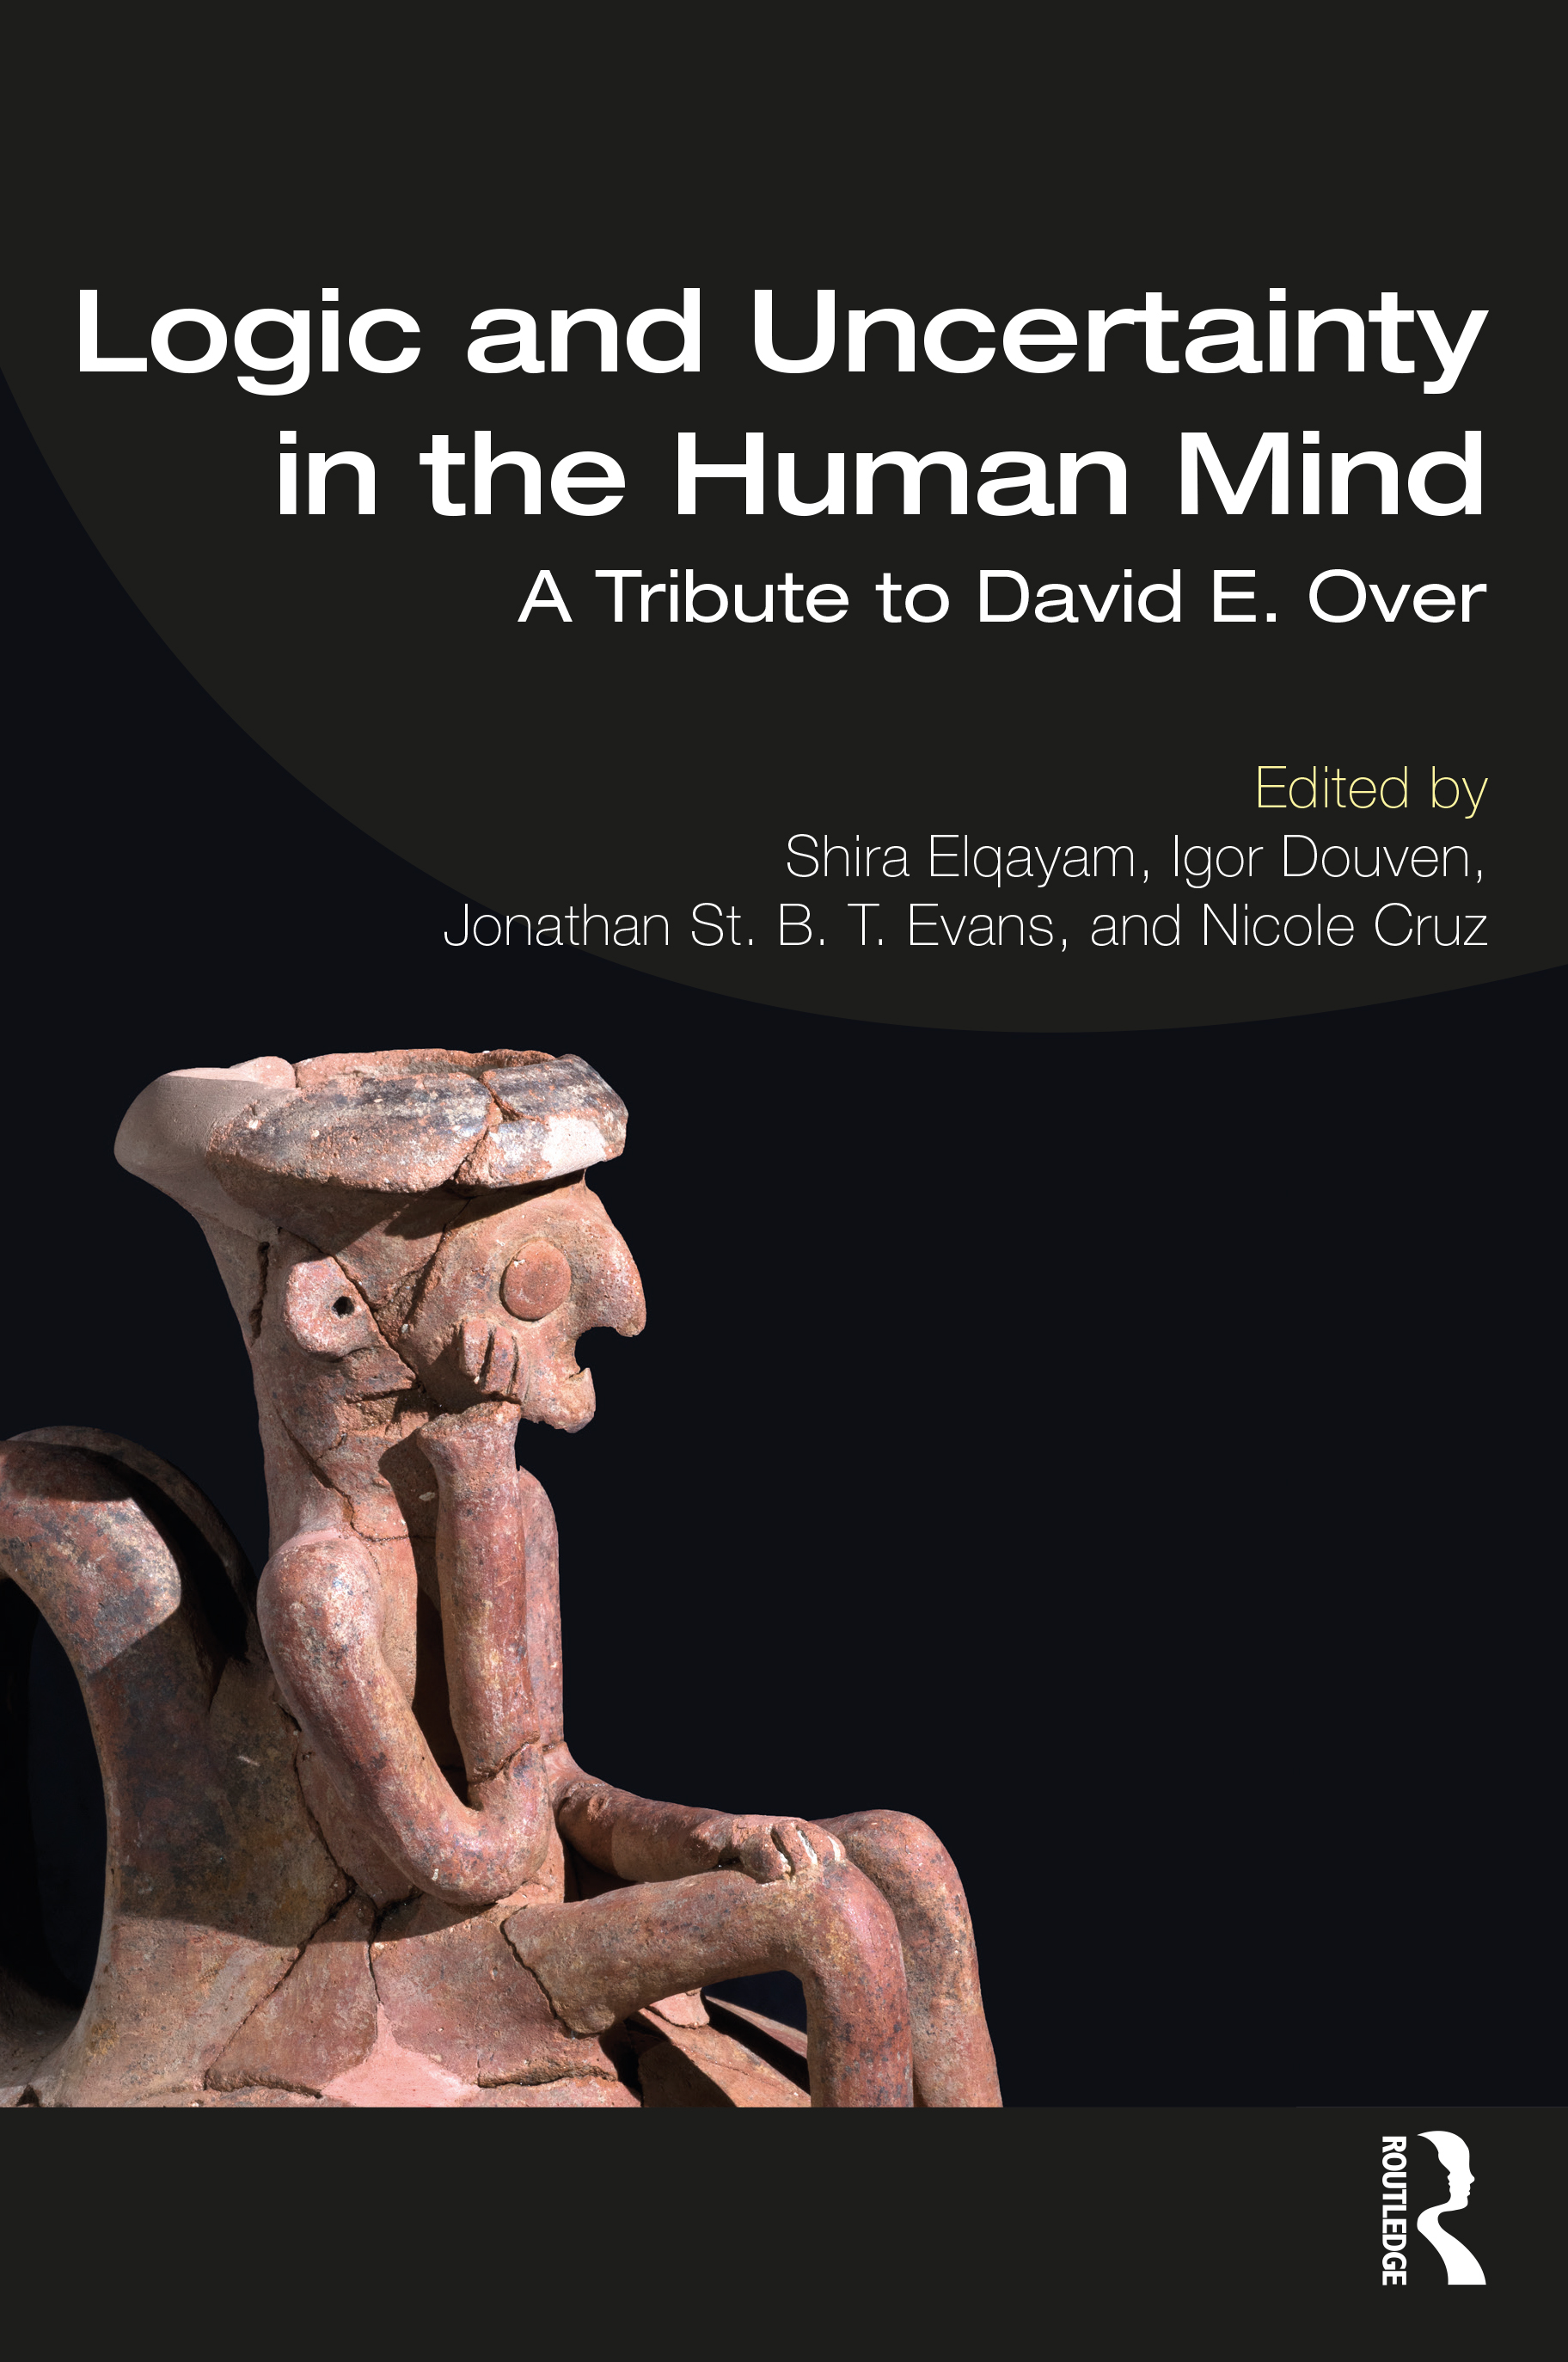 Logic and Uncertainty in the Human Mind: A Tribute to David E. Over book cover